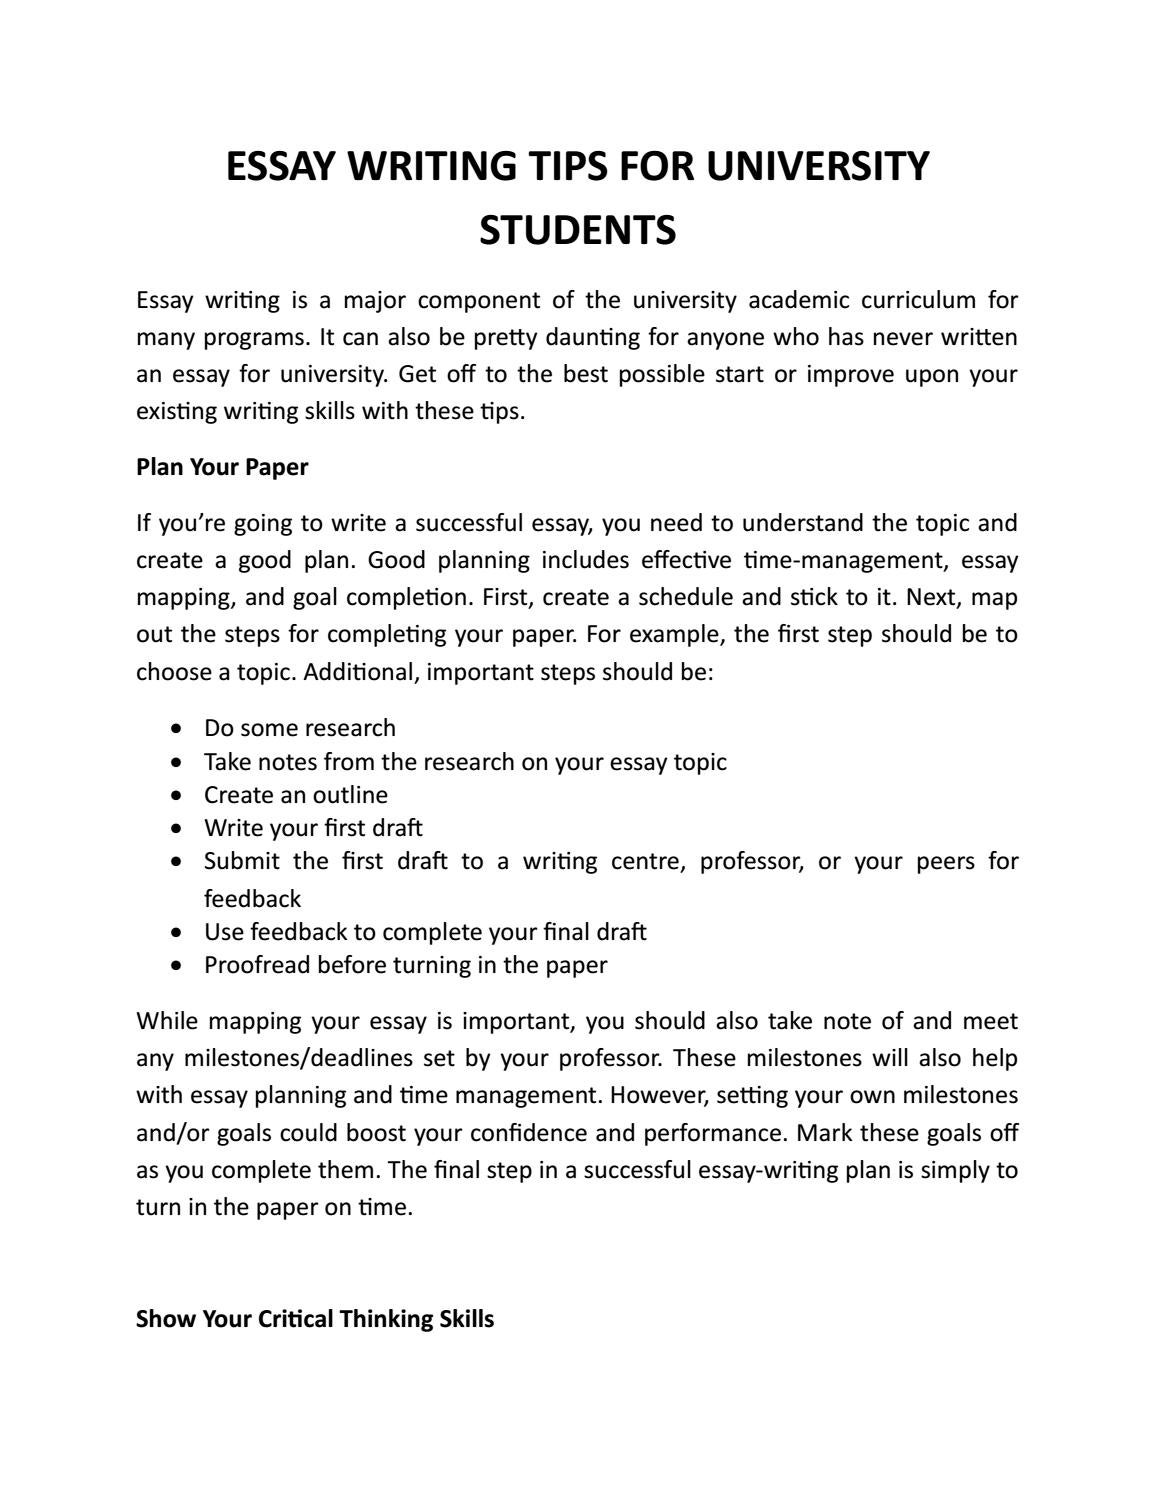 Creative Writing Essays  Justice Delayed Is Justice Denied Essay also List Of Persuasive Essay Topics Essay Writing Tips For University Students By Eleven  Issuu Who Am I Essay Example